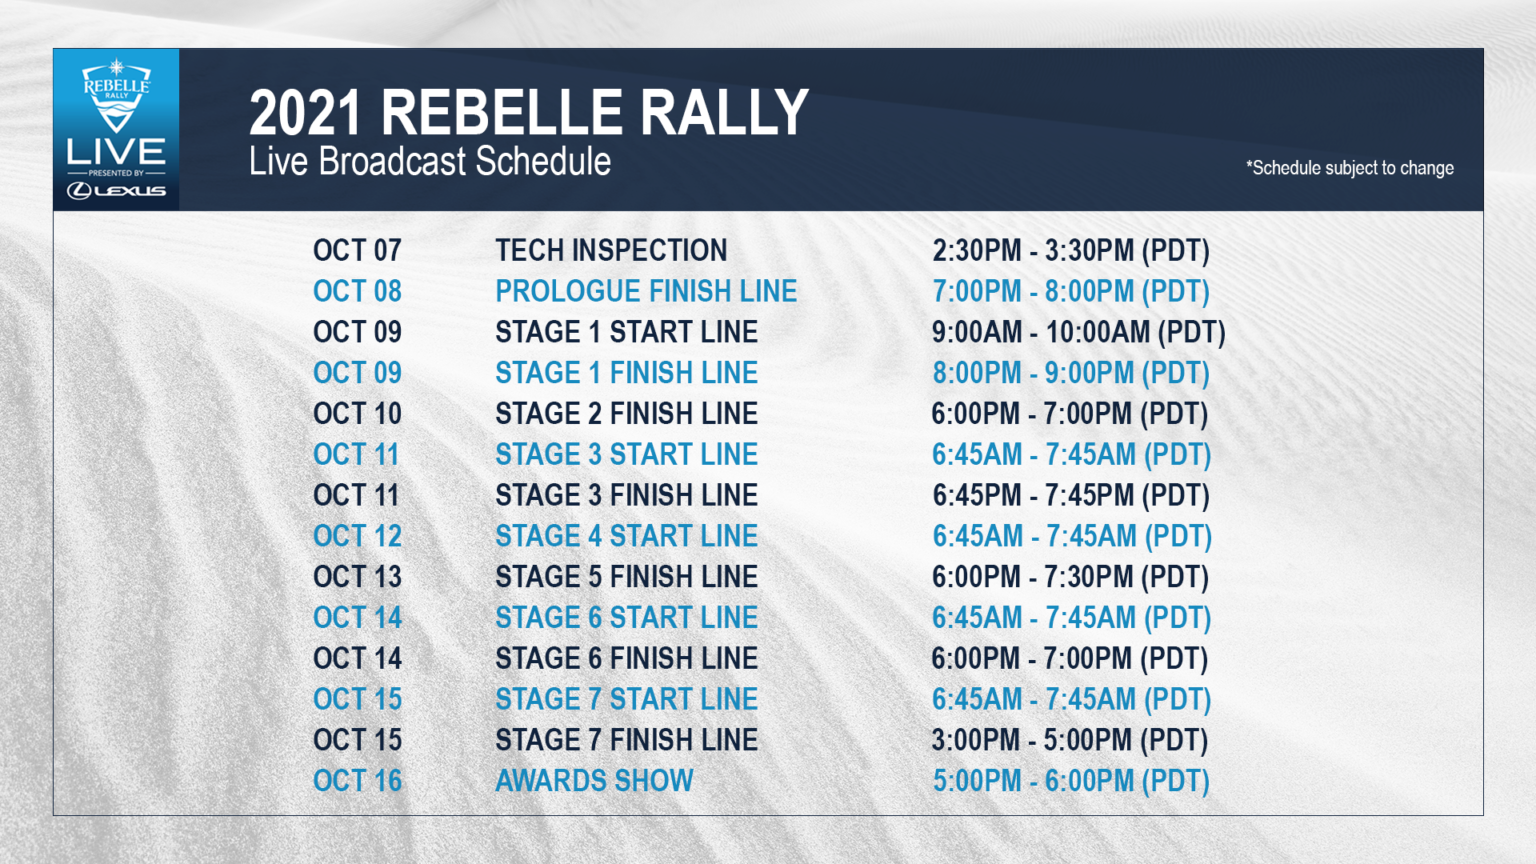 2021-Rebelle-Rally-live-schedule.png